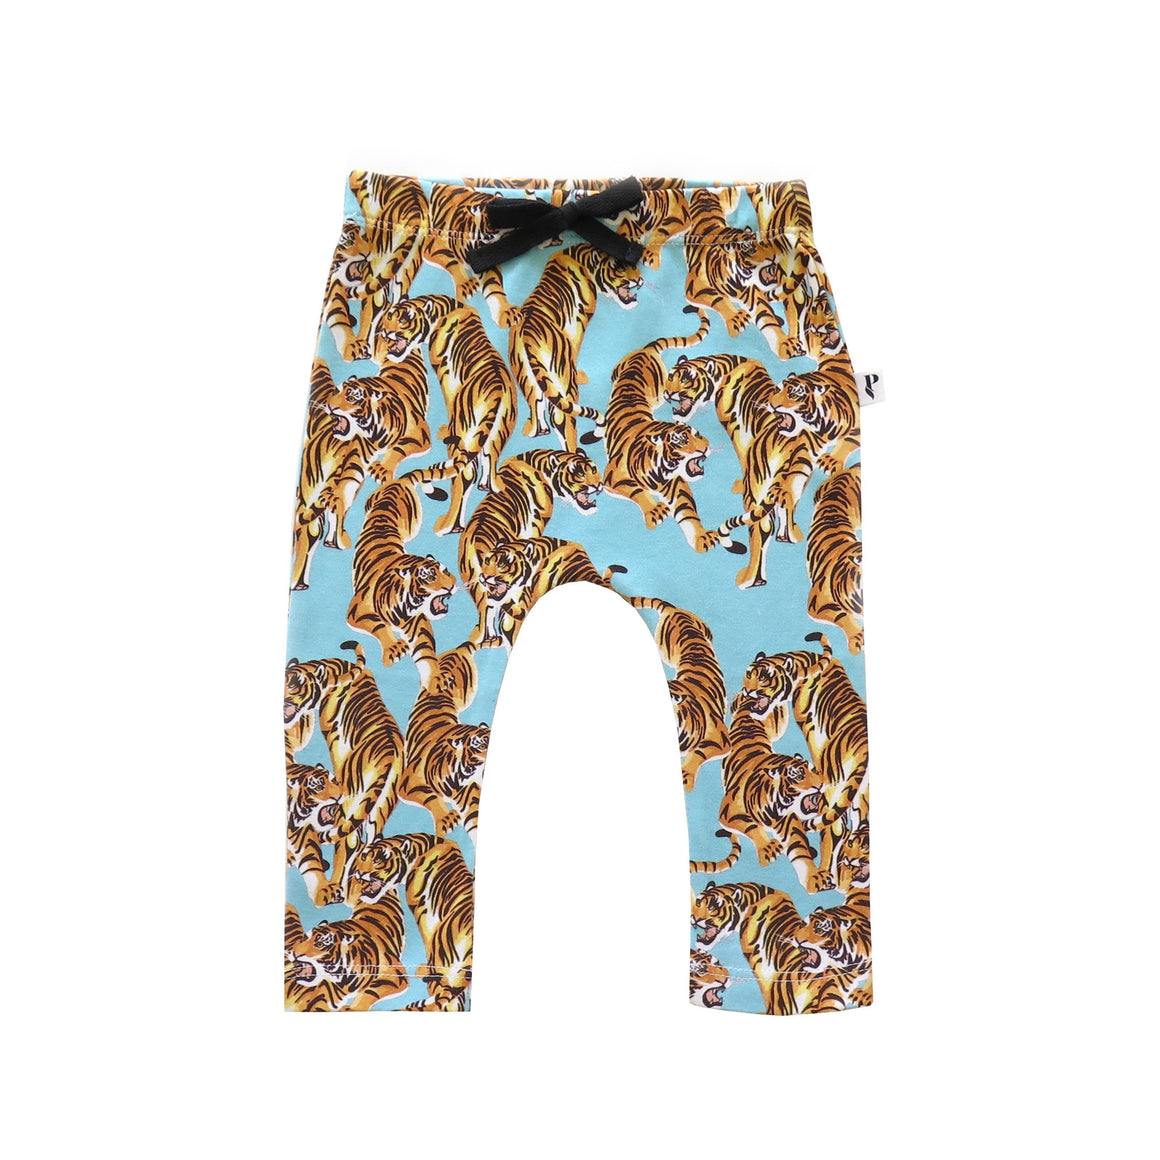 BOSTON LEGGING - THE YEAR OF THE TIGER BLUE